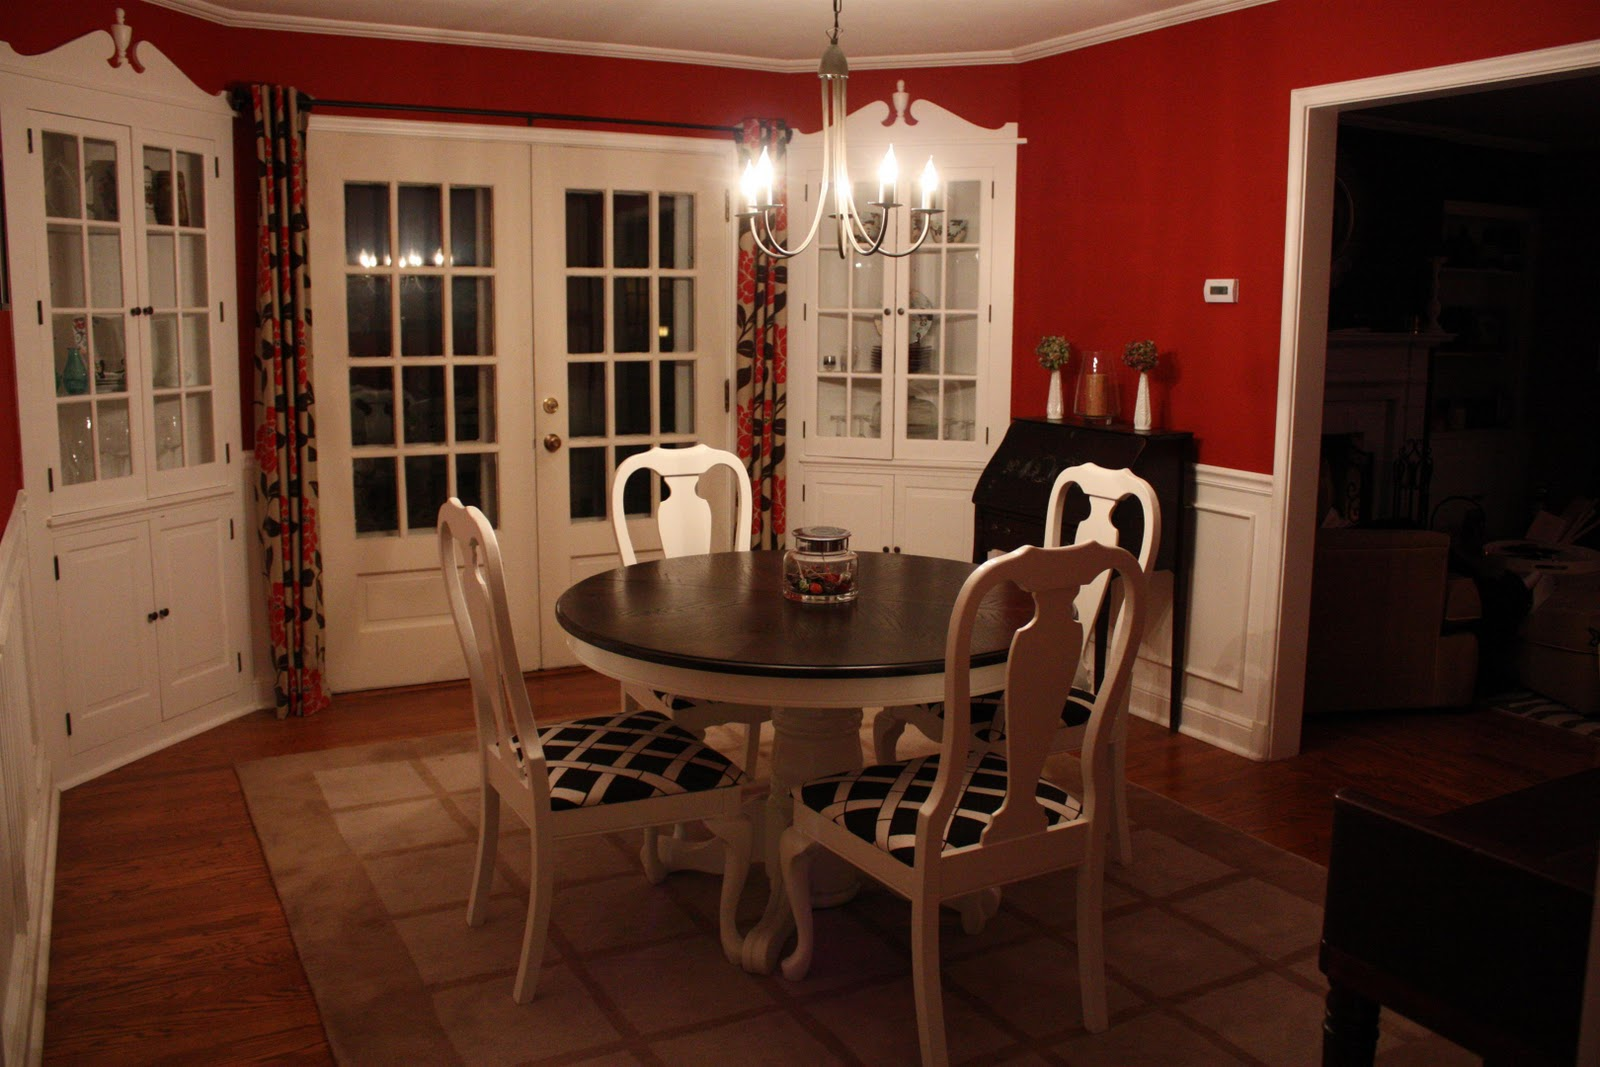 11 refinishing kitchen table Monday November 29